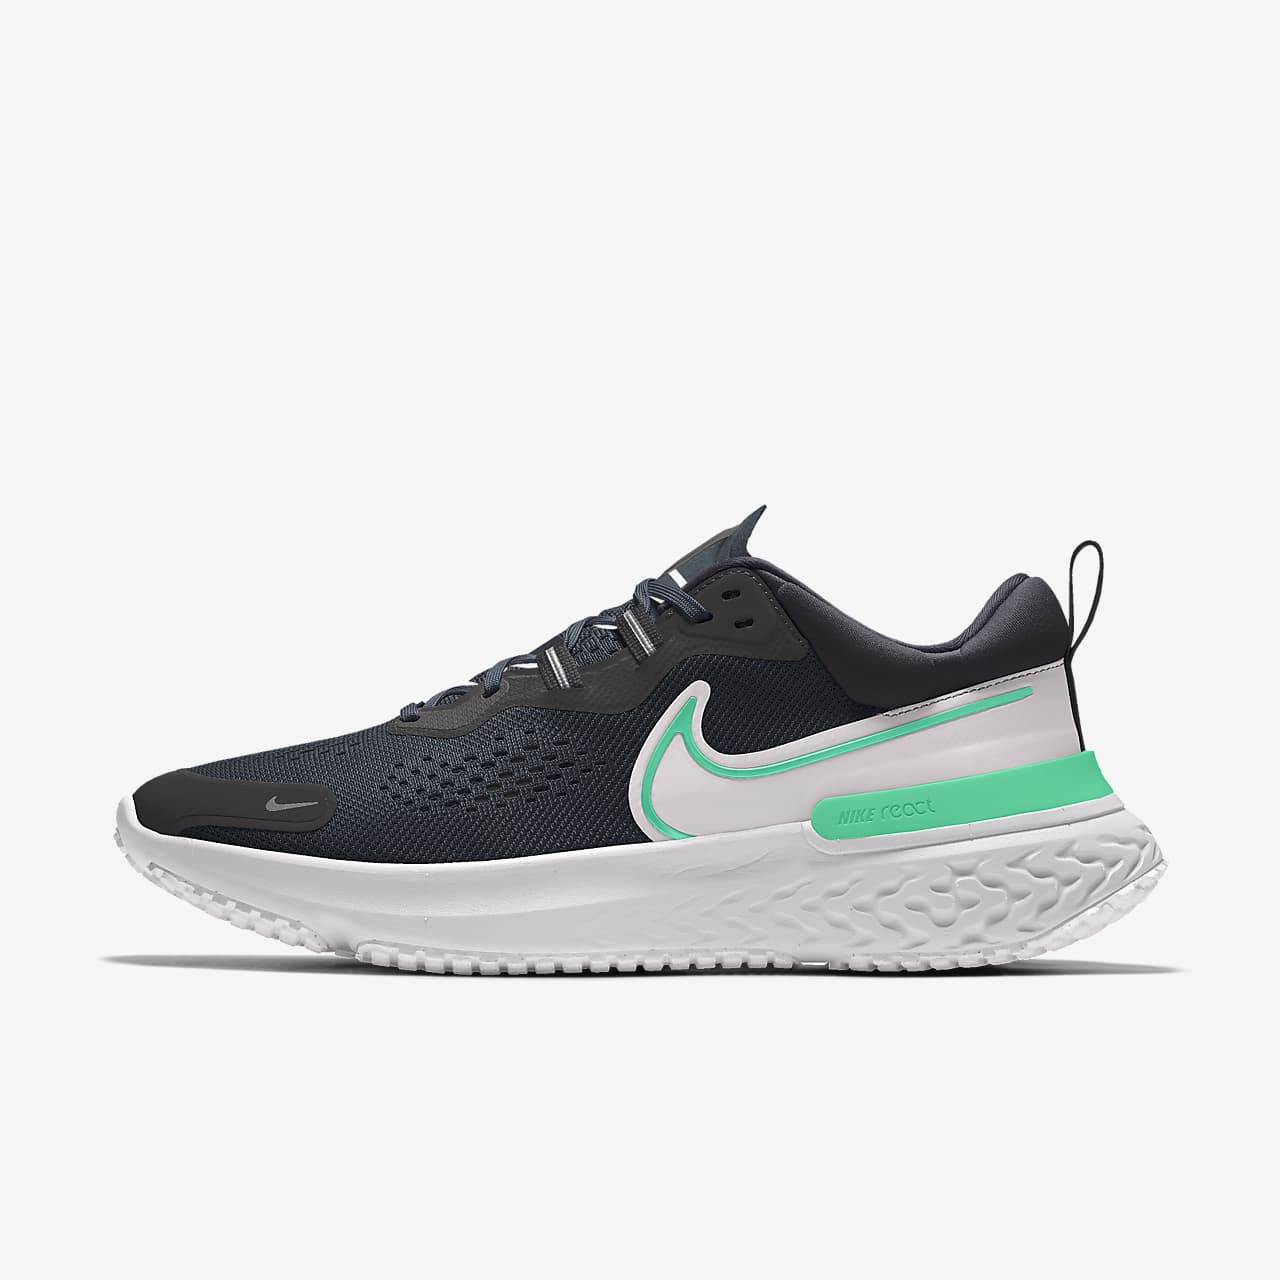 Chaussure de running personnalisable Nike React Miler2 By You pour Femme